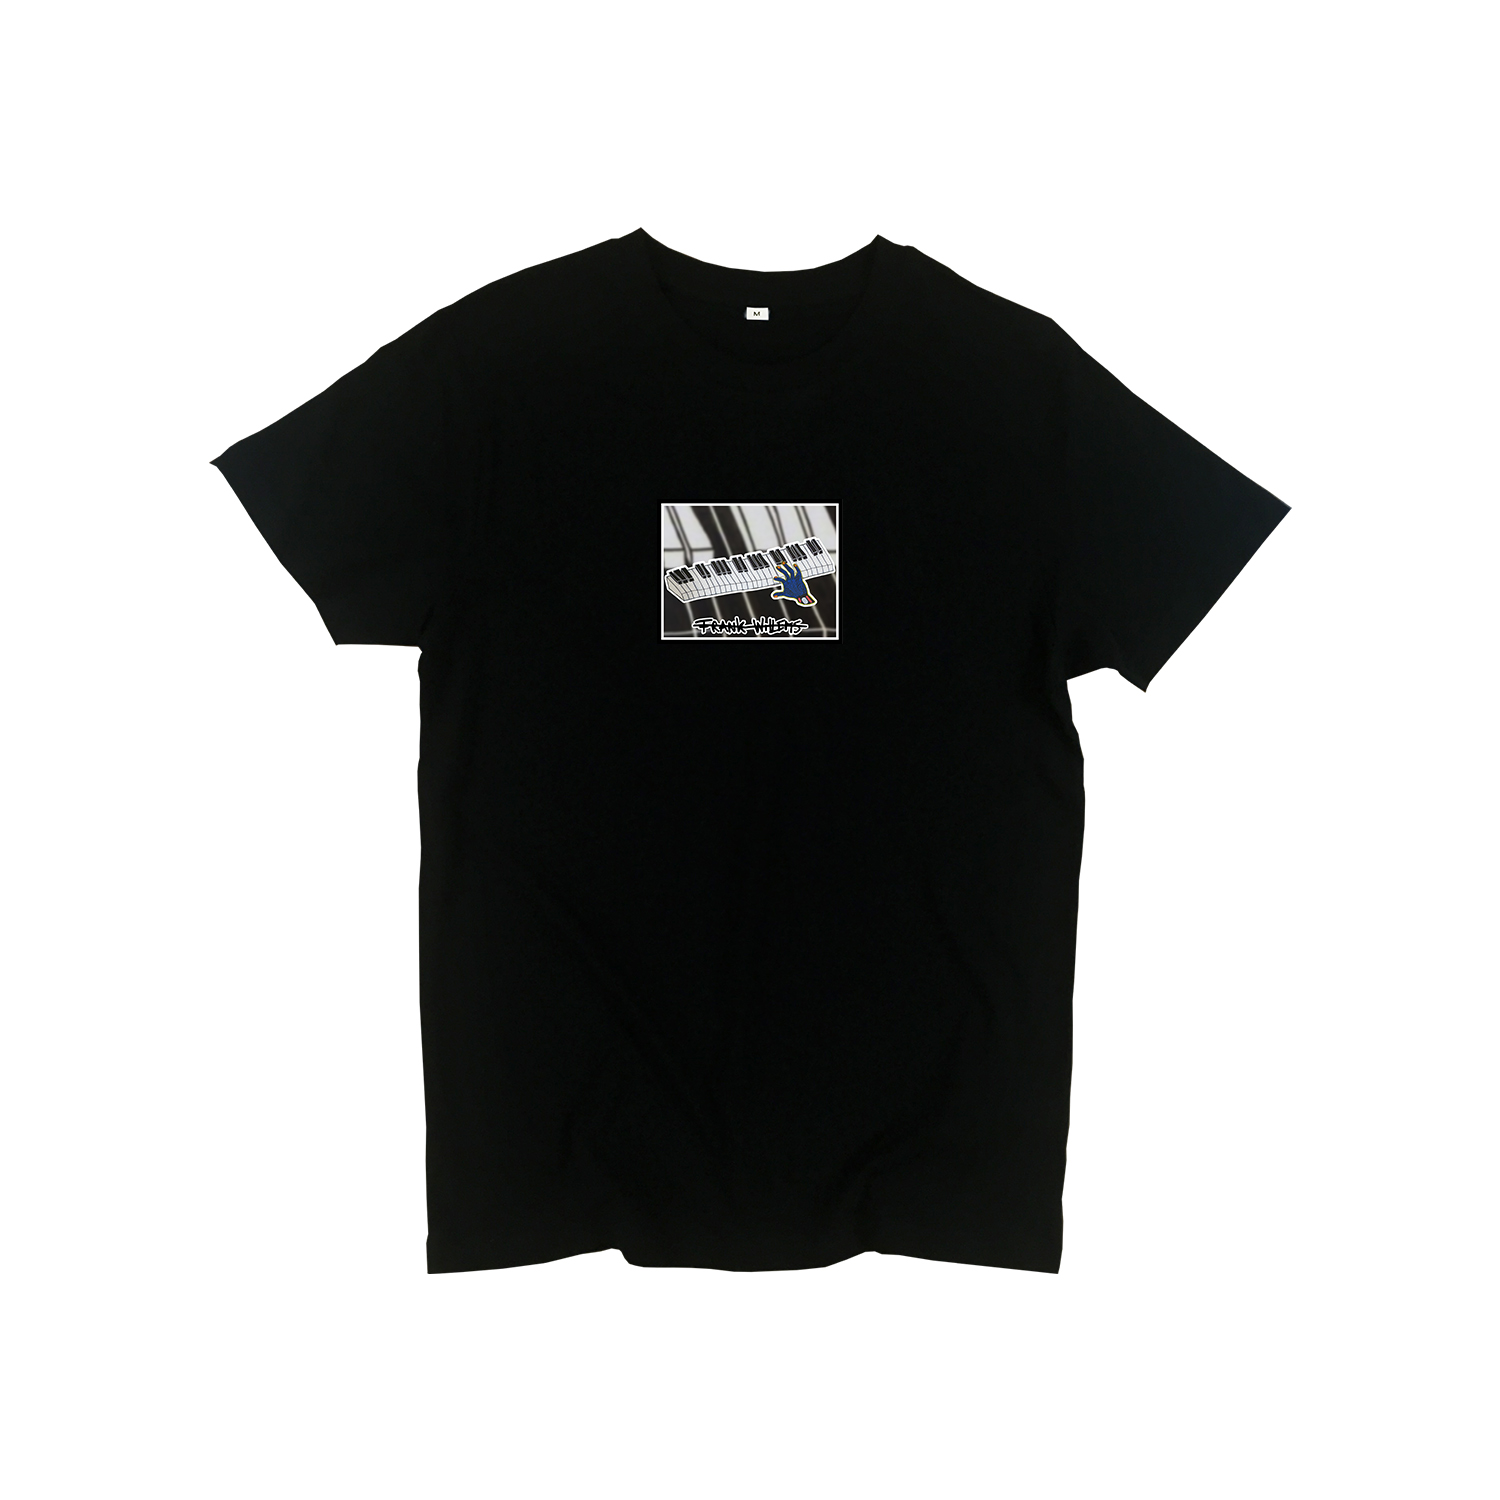 T-shirt black - ONE PRESS CLOSER TO MUSIC - Frank Willems